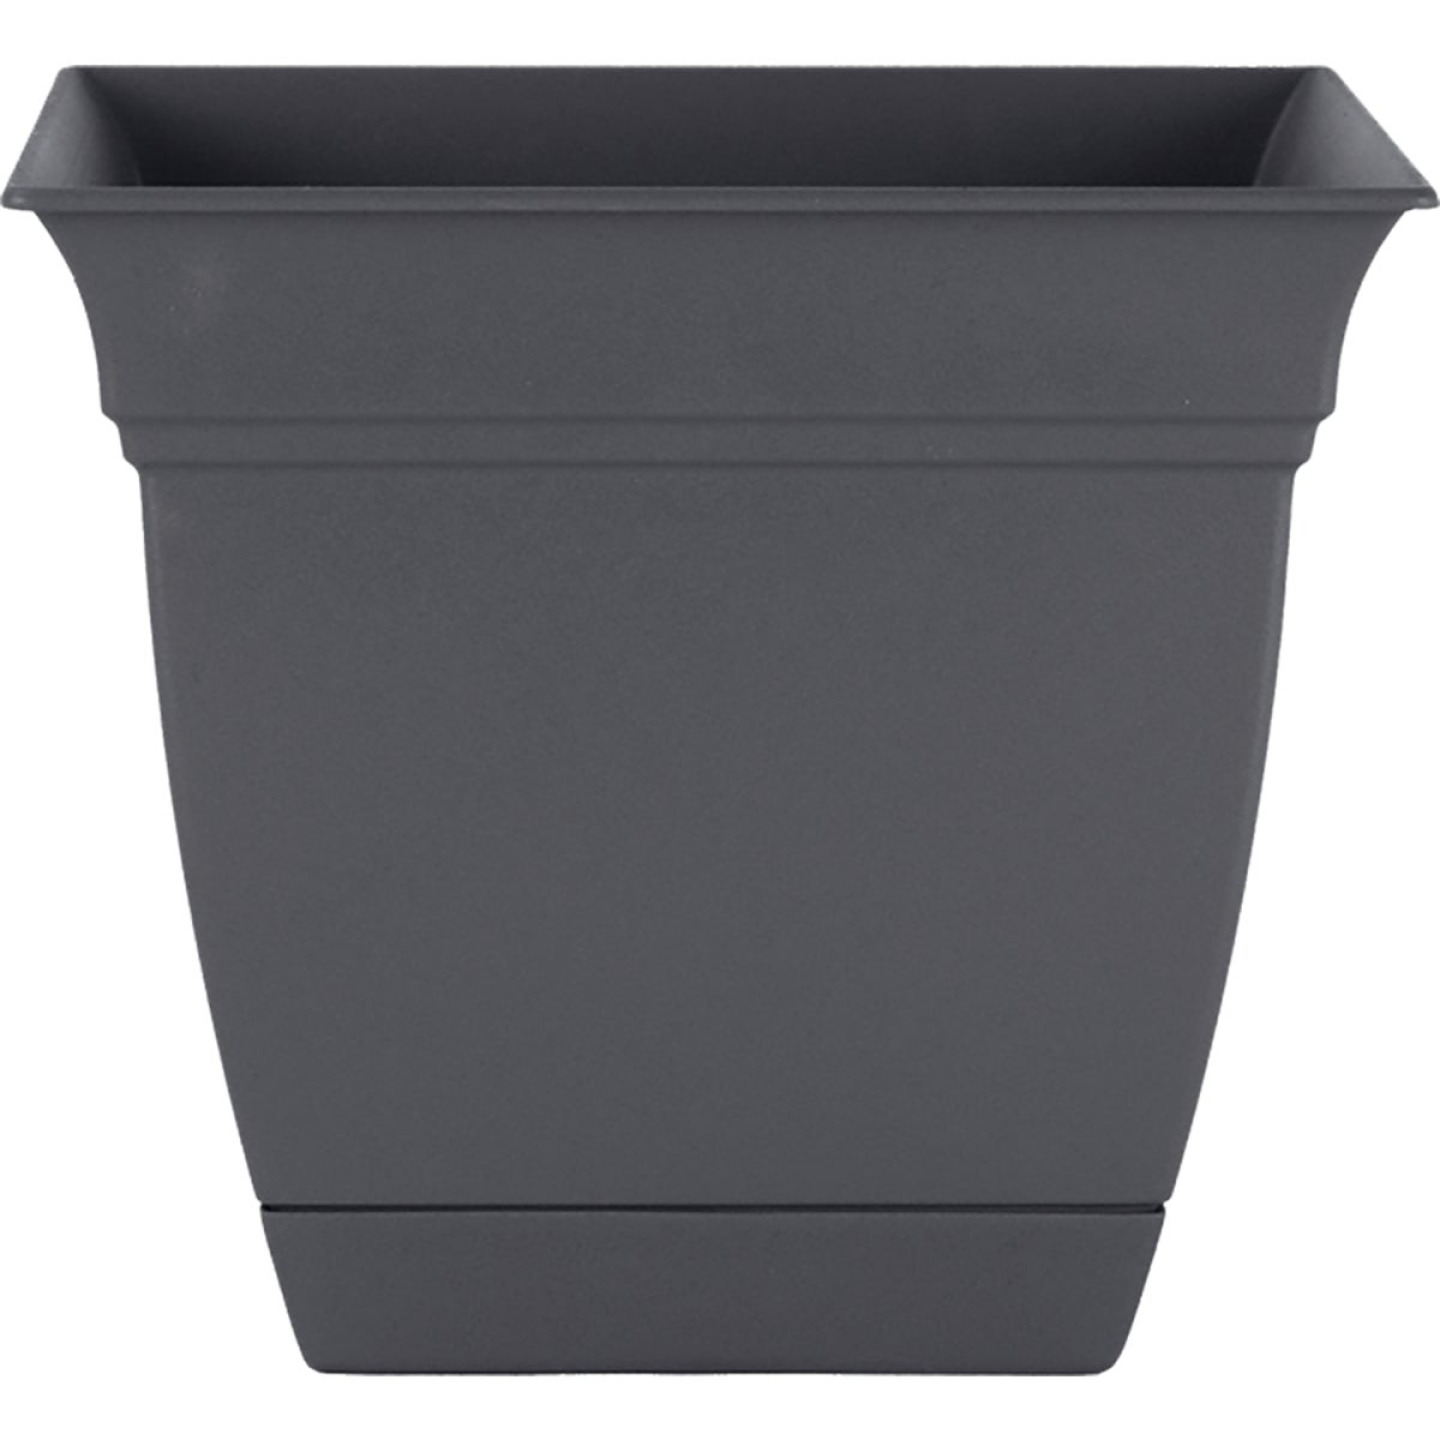 HC Companies Eclipse 8 In. x 8 In. x 7 In. Resin Warm Gray Planter Image 1